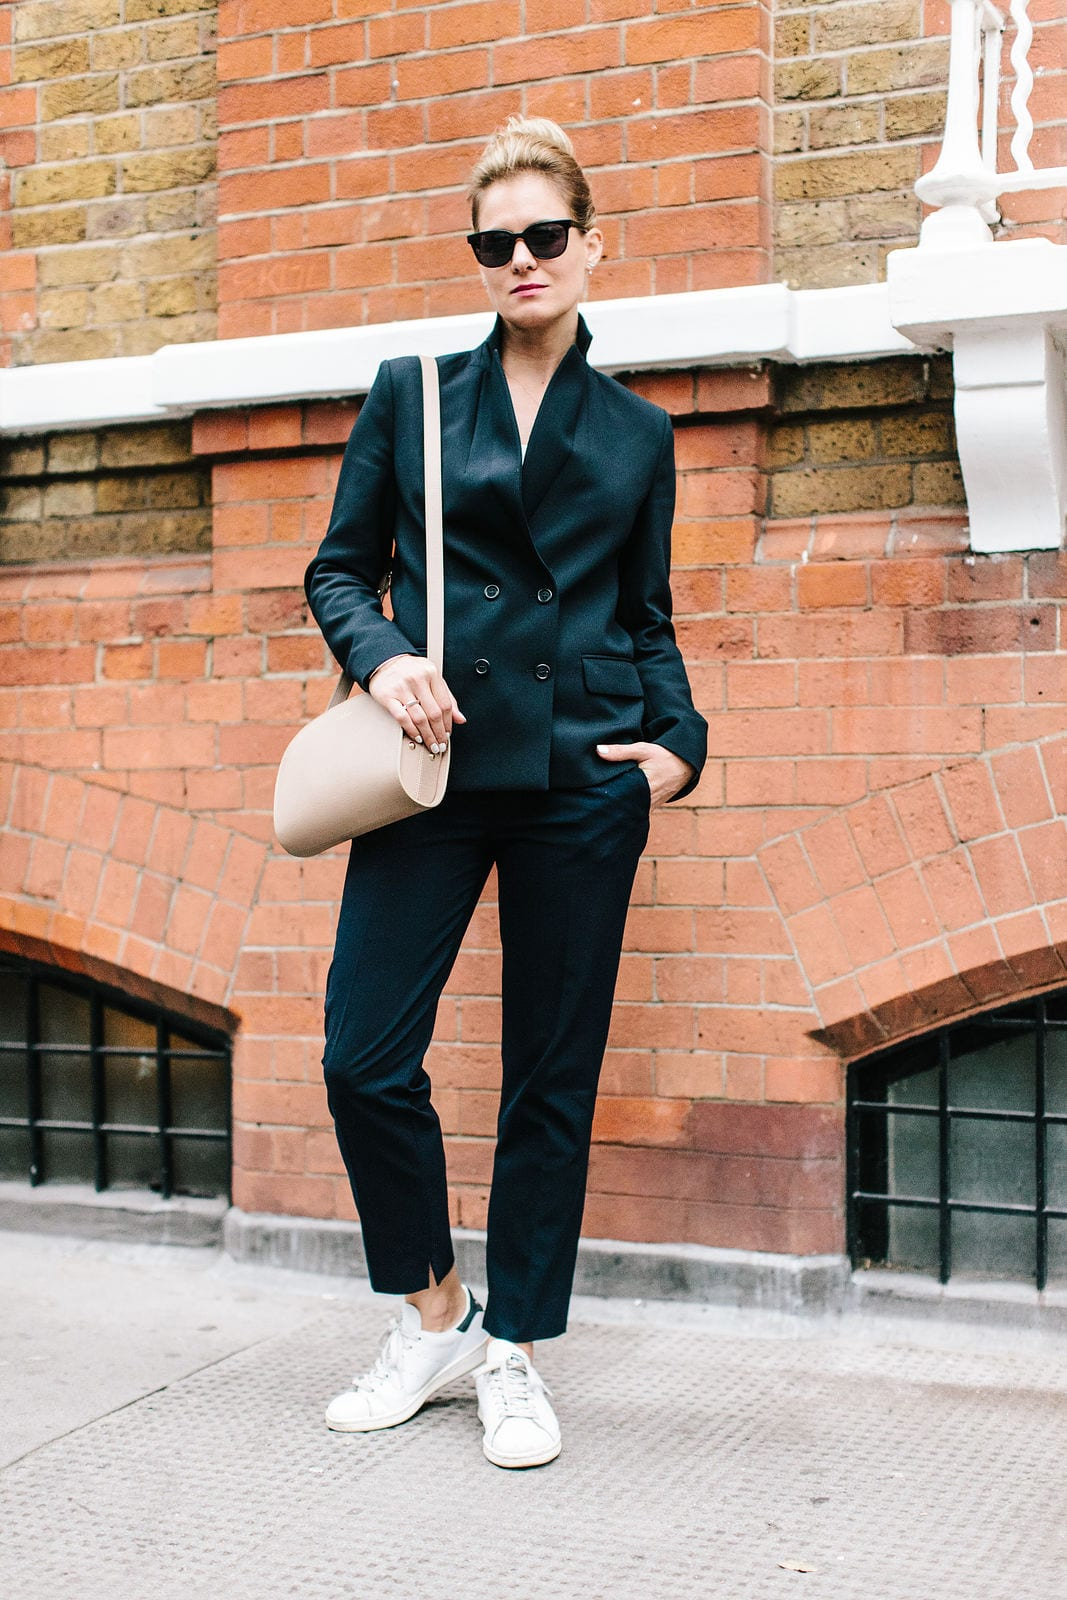 StyleAndMinimalism | It's Personal | LFW SS16 | Wearing A Suit To LFW | Photographer Dina Tsesarsky